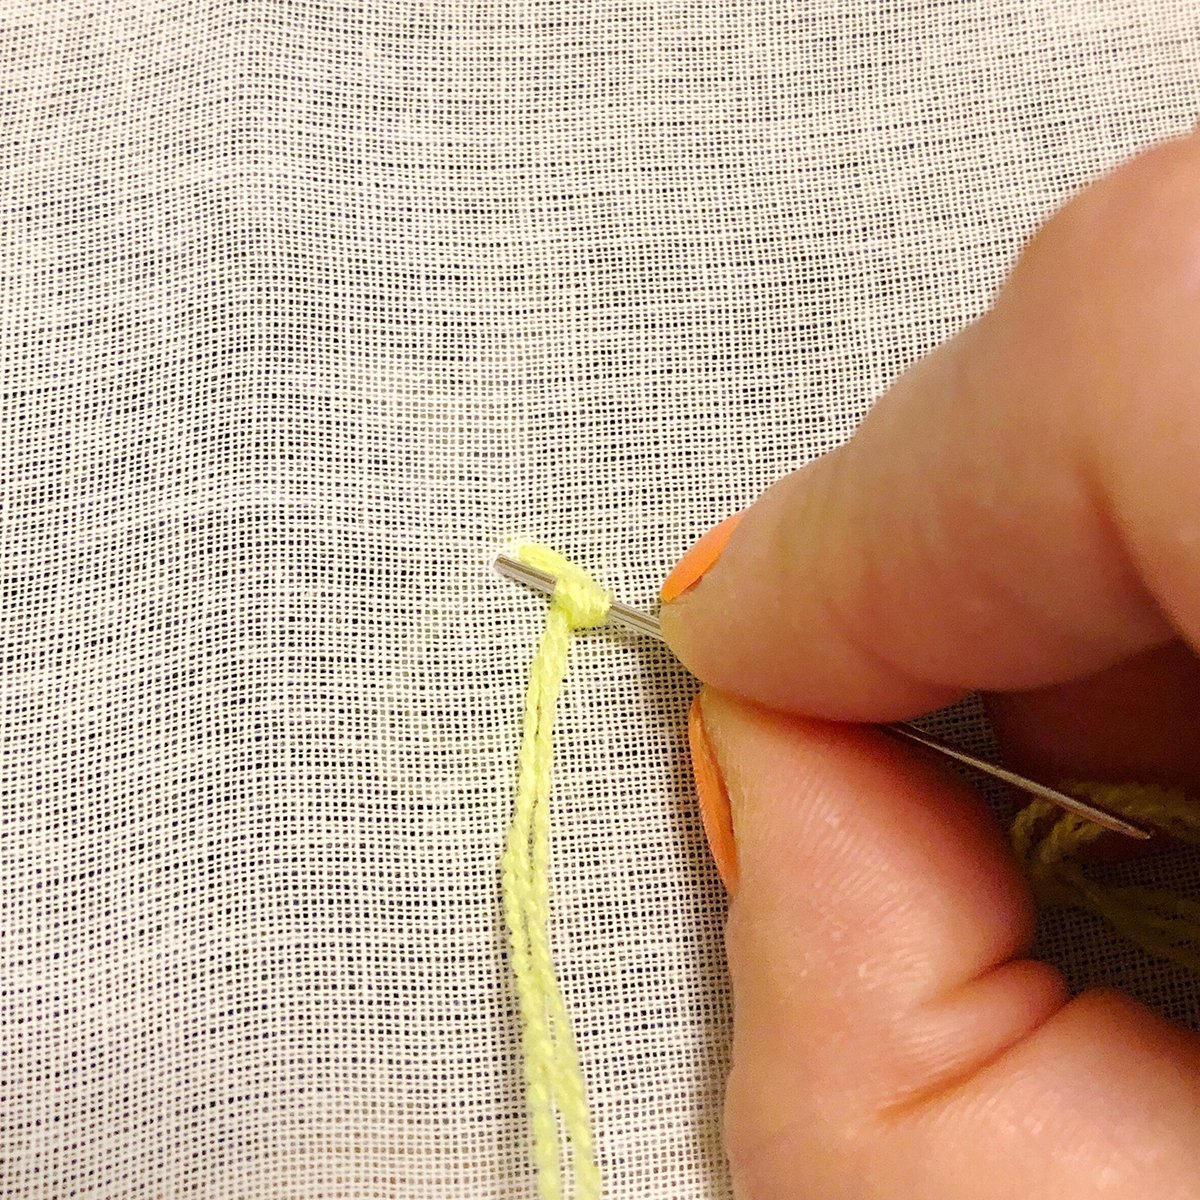 Embroidery - French Knot - 04